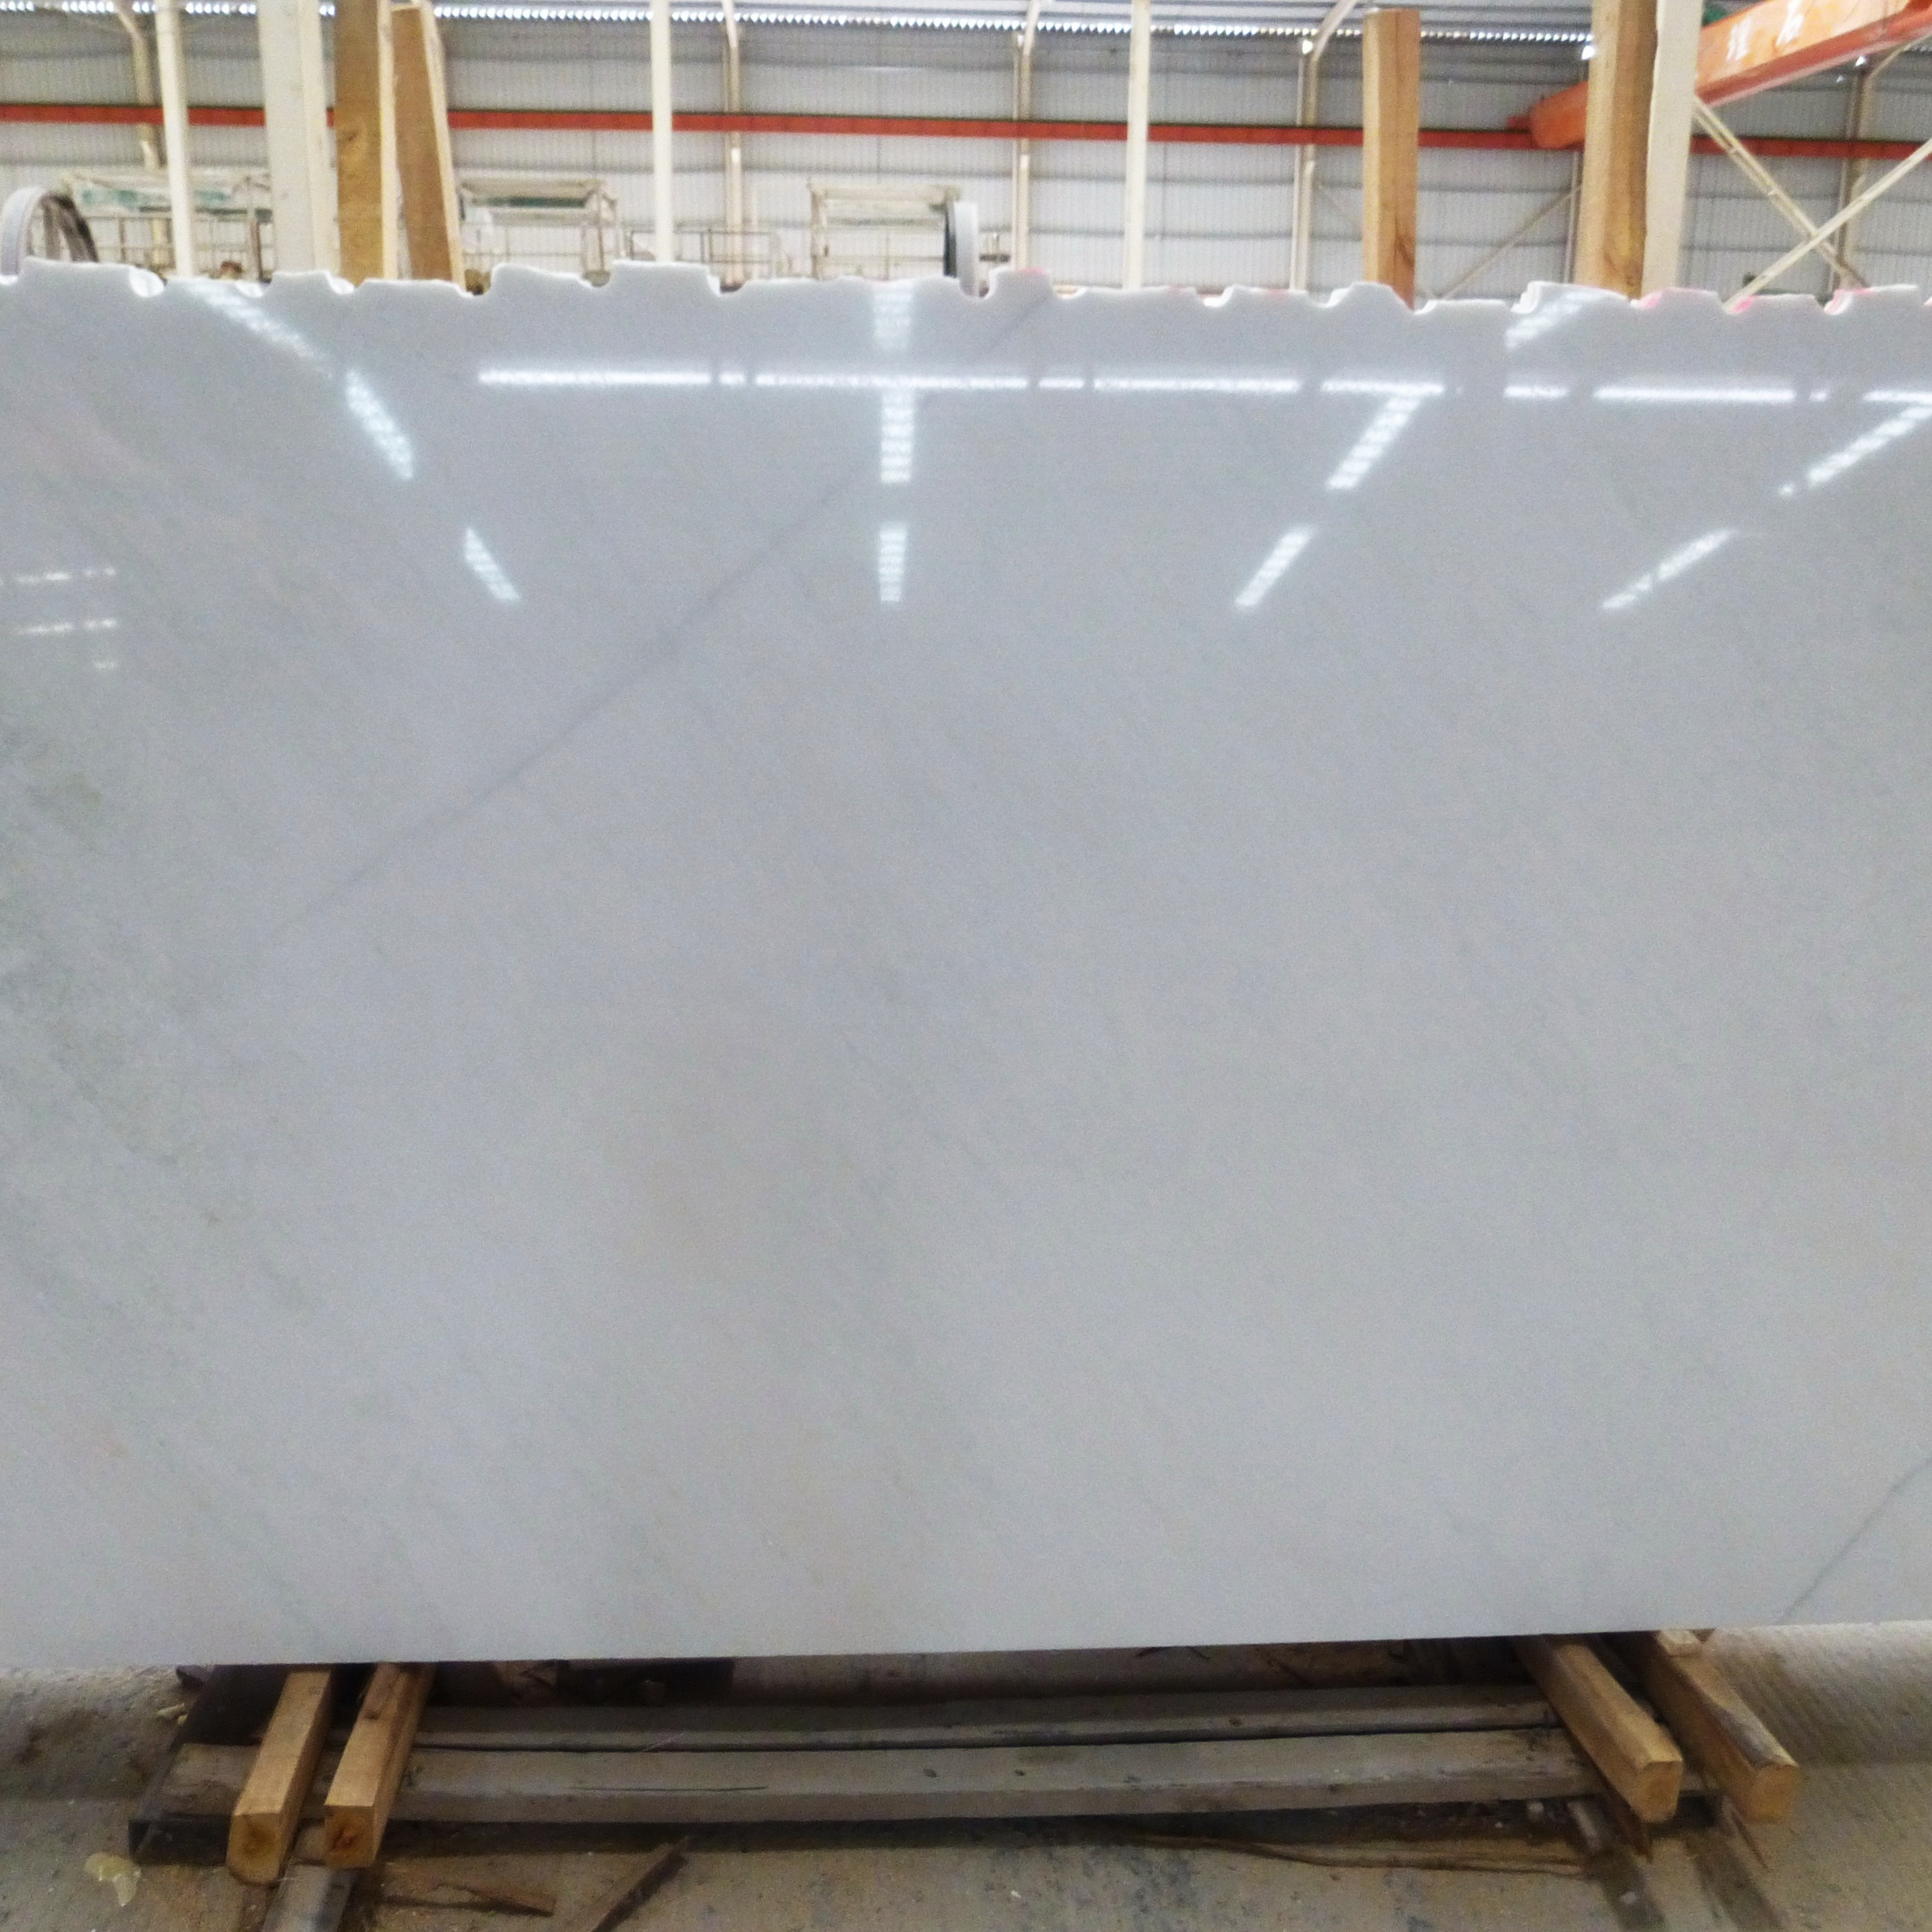 Chinese High Quality Natural Pure White Crystal Snow White Marble Countertop Kitchen Bathroom Buy White Marble Background Snow White Marble Tile White Countertops Kitchen Product On Alibaba Com